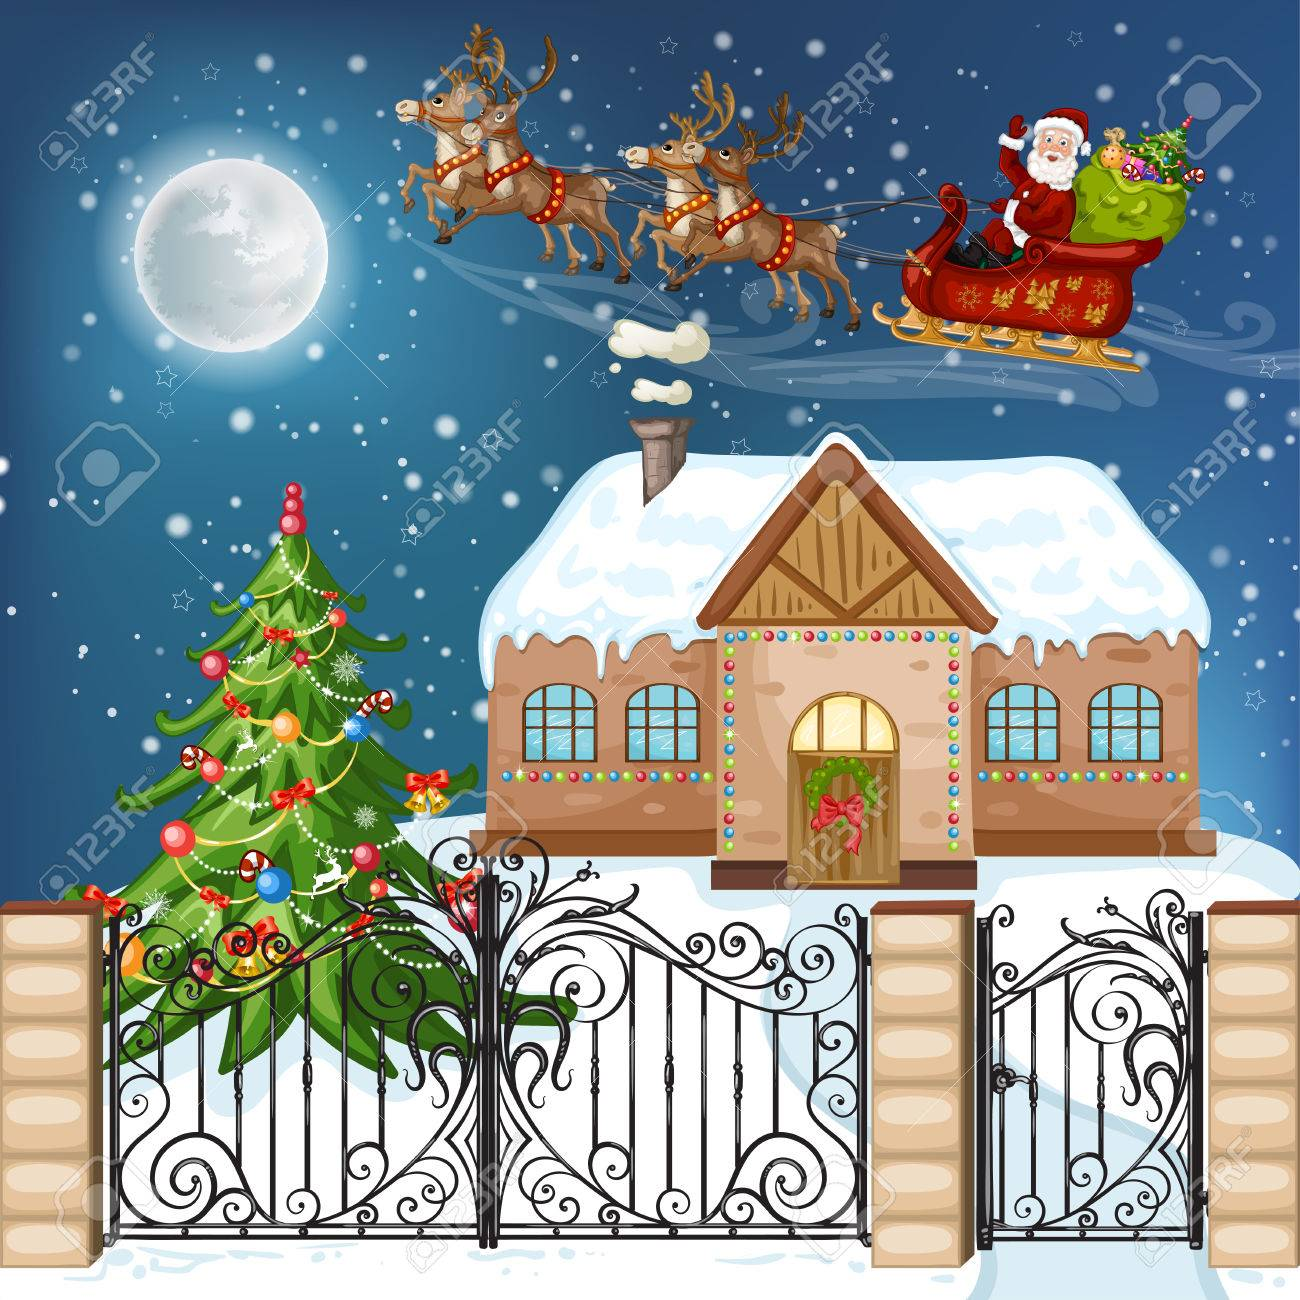 Merry Christmas Card Illustration With Christmas House Christmas Royalty Free Cliparts Vectors And Stock Illustration Image 49131300